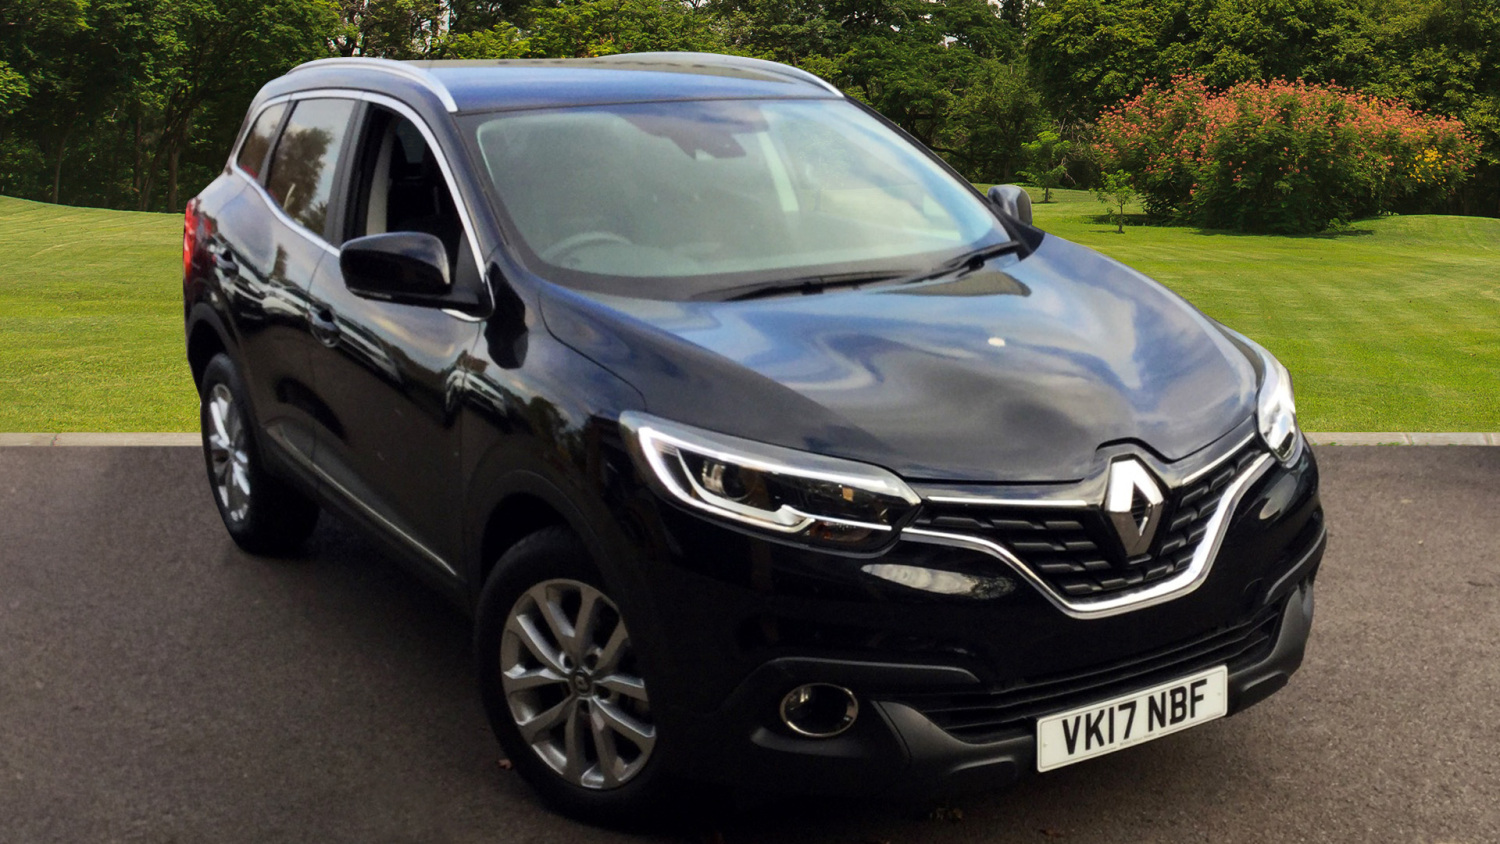 used renault kadjar 1 6 dci dynamique nav 5dr 4wd diesel hatchback for sale bristol street motors. Black Bedroom Furniture Sets. Home Design Ideas